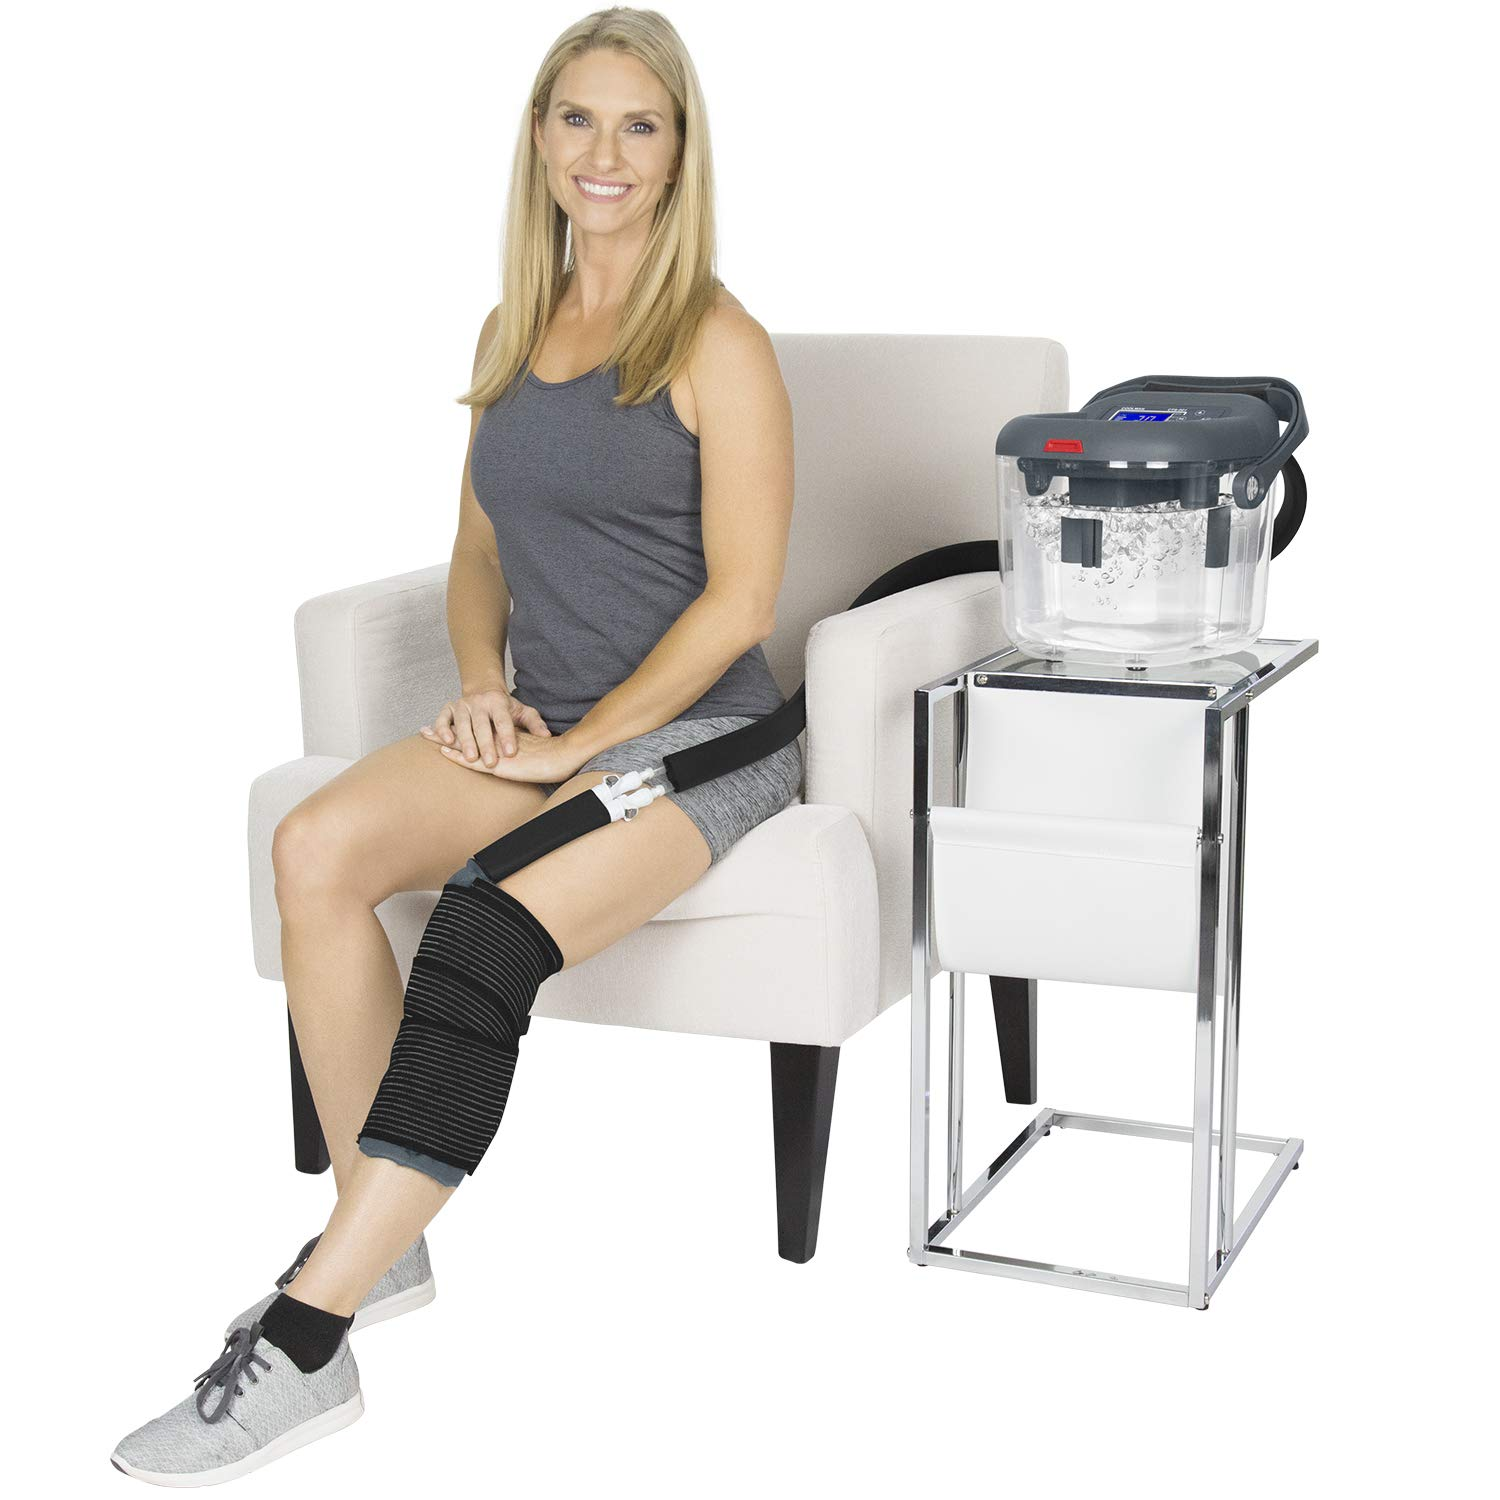 Vive Cold Therapy Machine - Large Ice Cryo Cuff - Flexible Cryotherapy Freeze Kit System Fits Knee, Shoulder, Ankle, Cervical, Back, Leg, Hip and ACL - Wearable Adjustable Wrap Pad - Cooler Pump by Vive